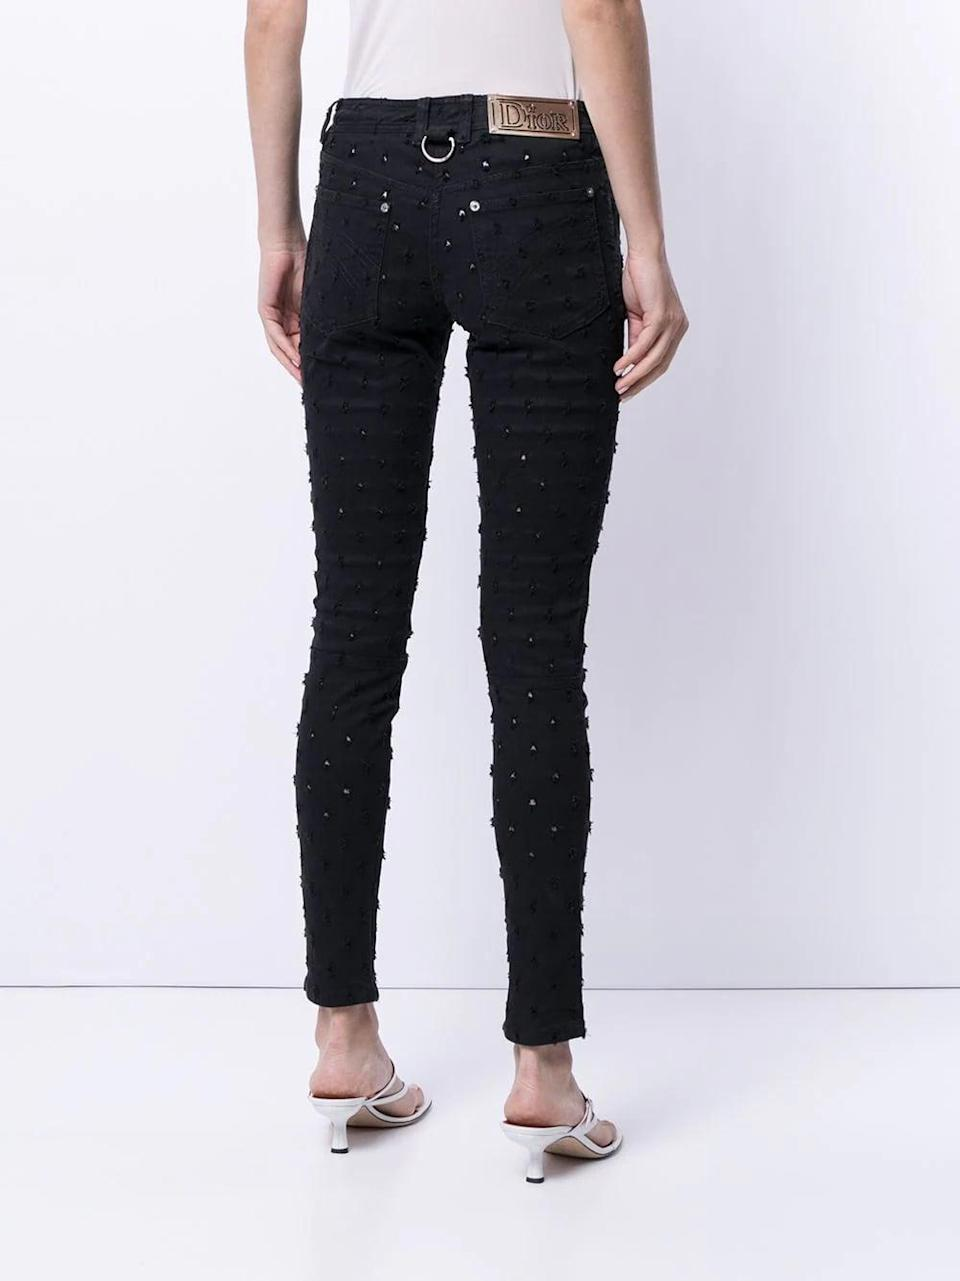 <p>Though you may find yourself quickly on the verge of splurging, Farfetch's Pre-Owned section includes some really beautiful pieces from the archives, like these <span>Christian Dior Embroidered Skinny Jeans</span> ($605).</p>